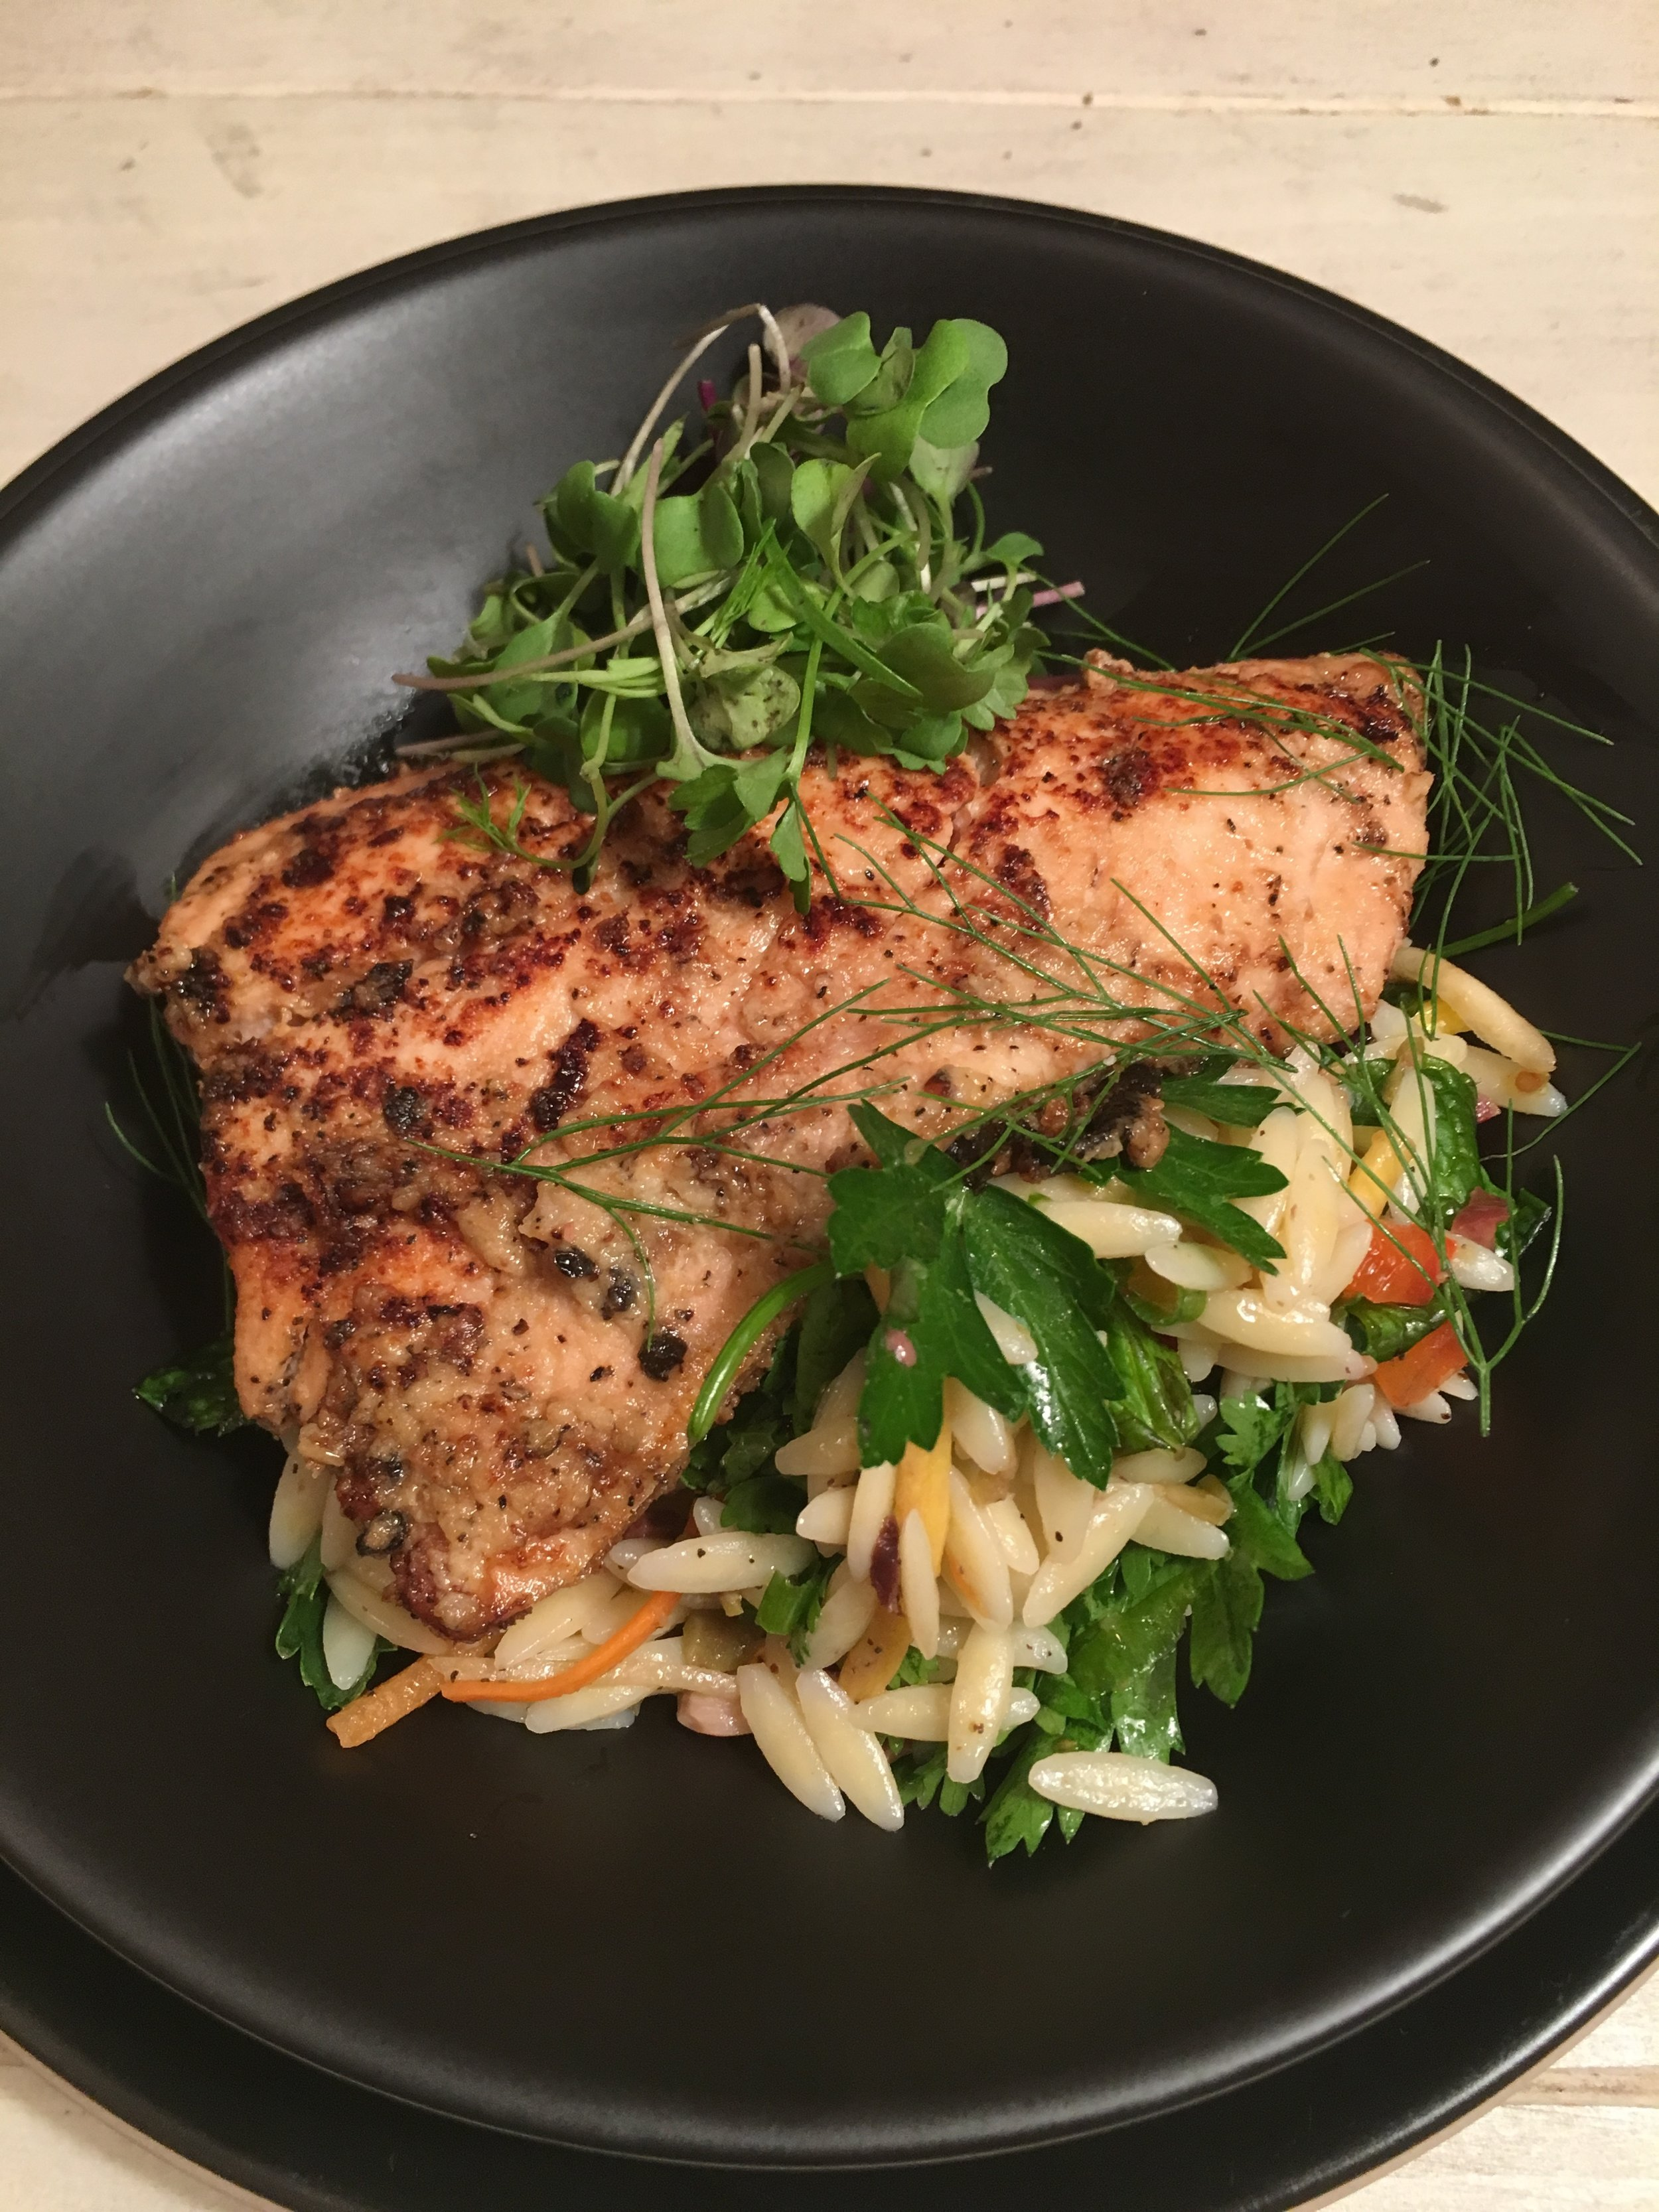 Grilled Salmon over Herbed Orzo